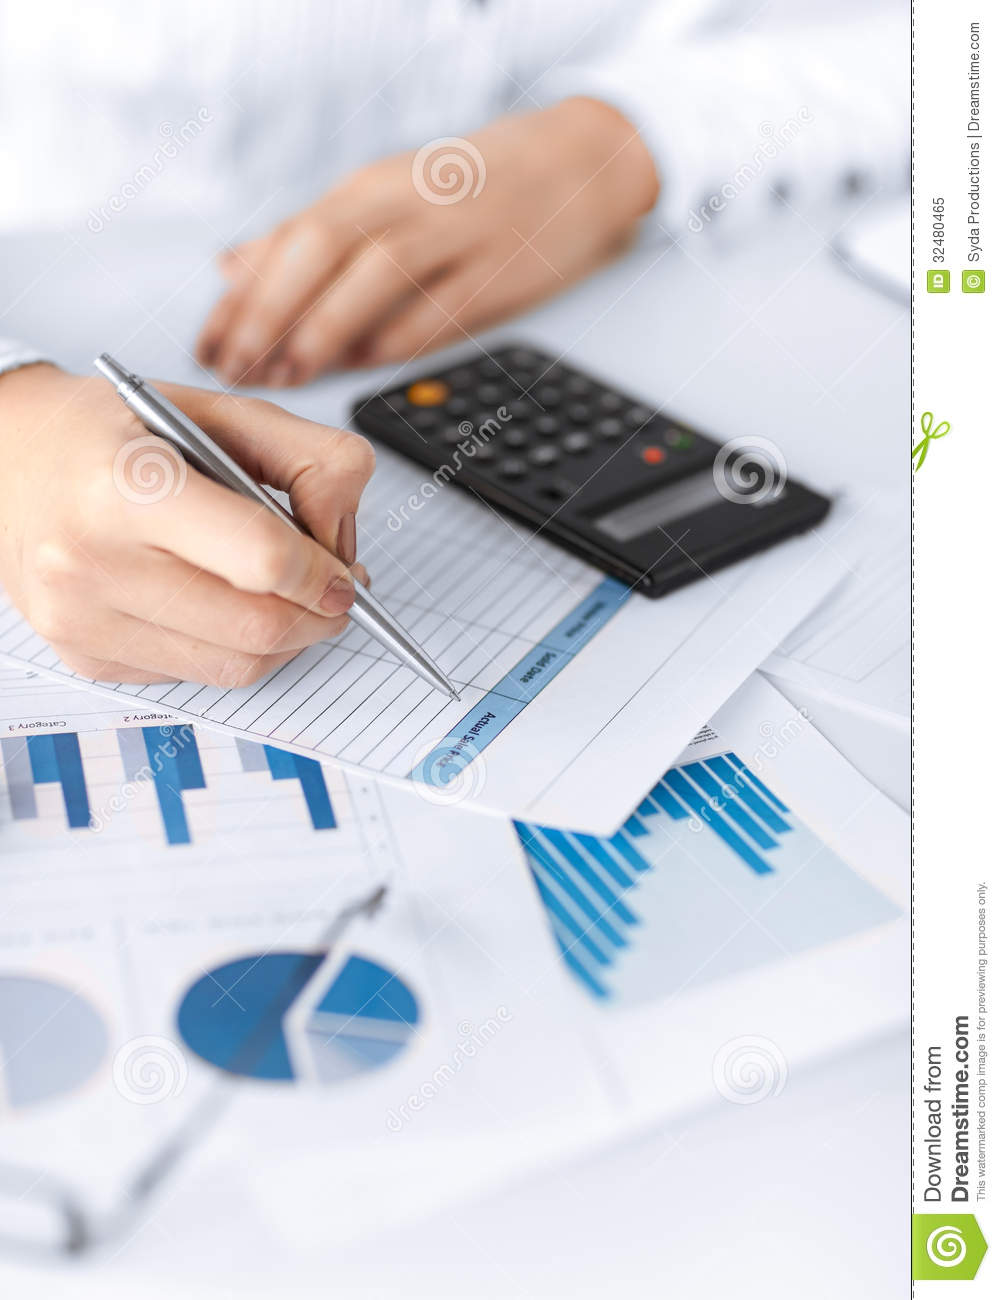 Woman Hand With Calculator And Papers Royalty Free Stock